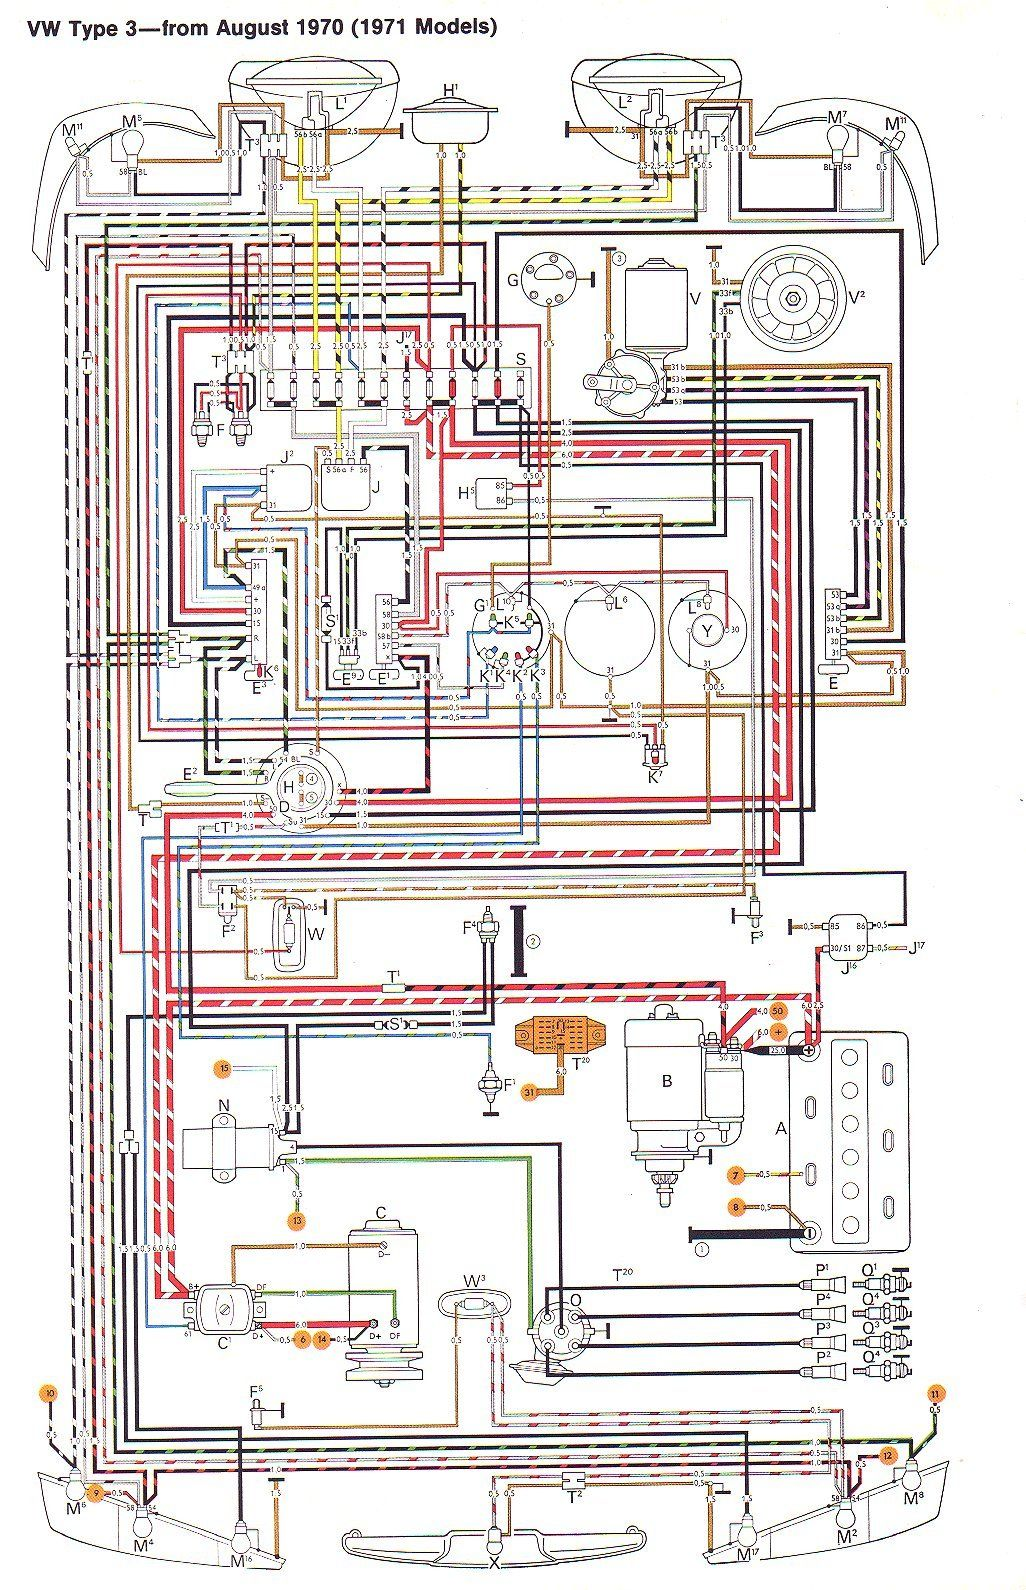 medium resolution of 1968 volkswagen wiring diagram wiring diagrams konsultwiring diagram for volkswagen van wiring diagram centre 1968 vw